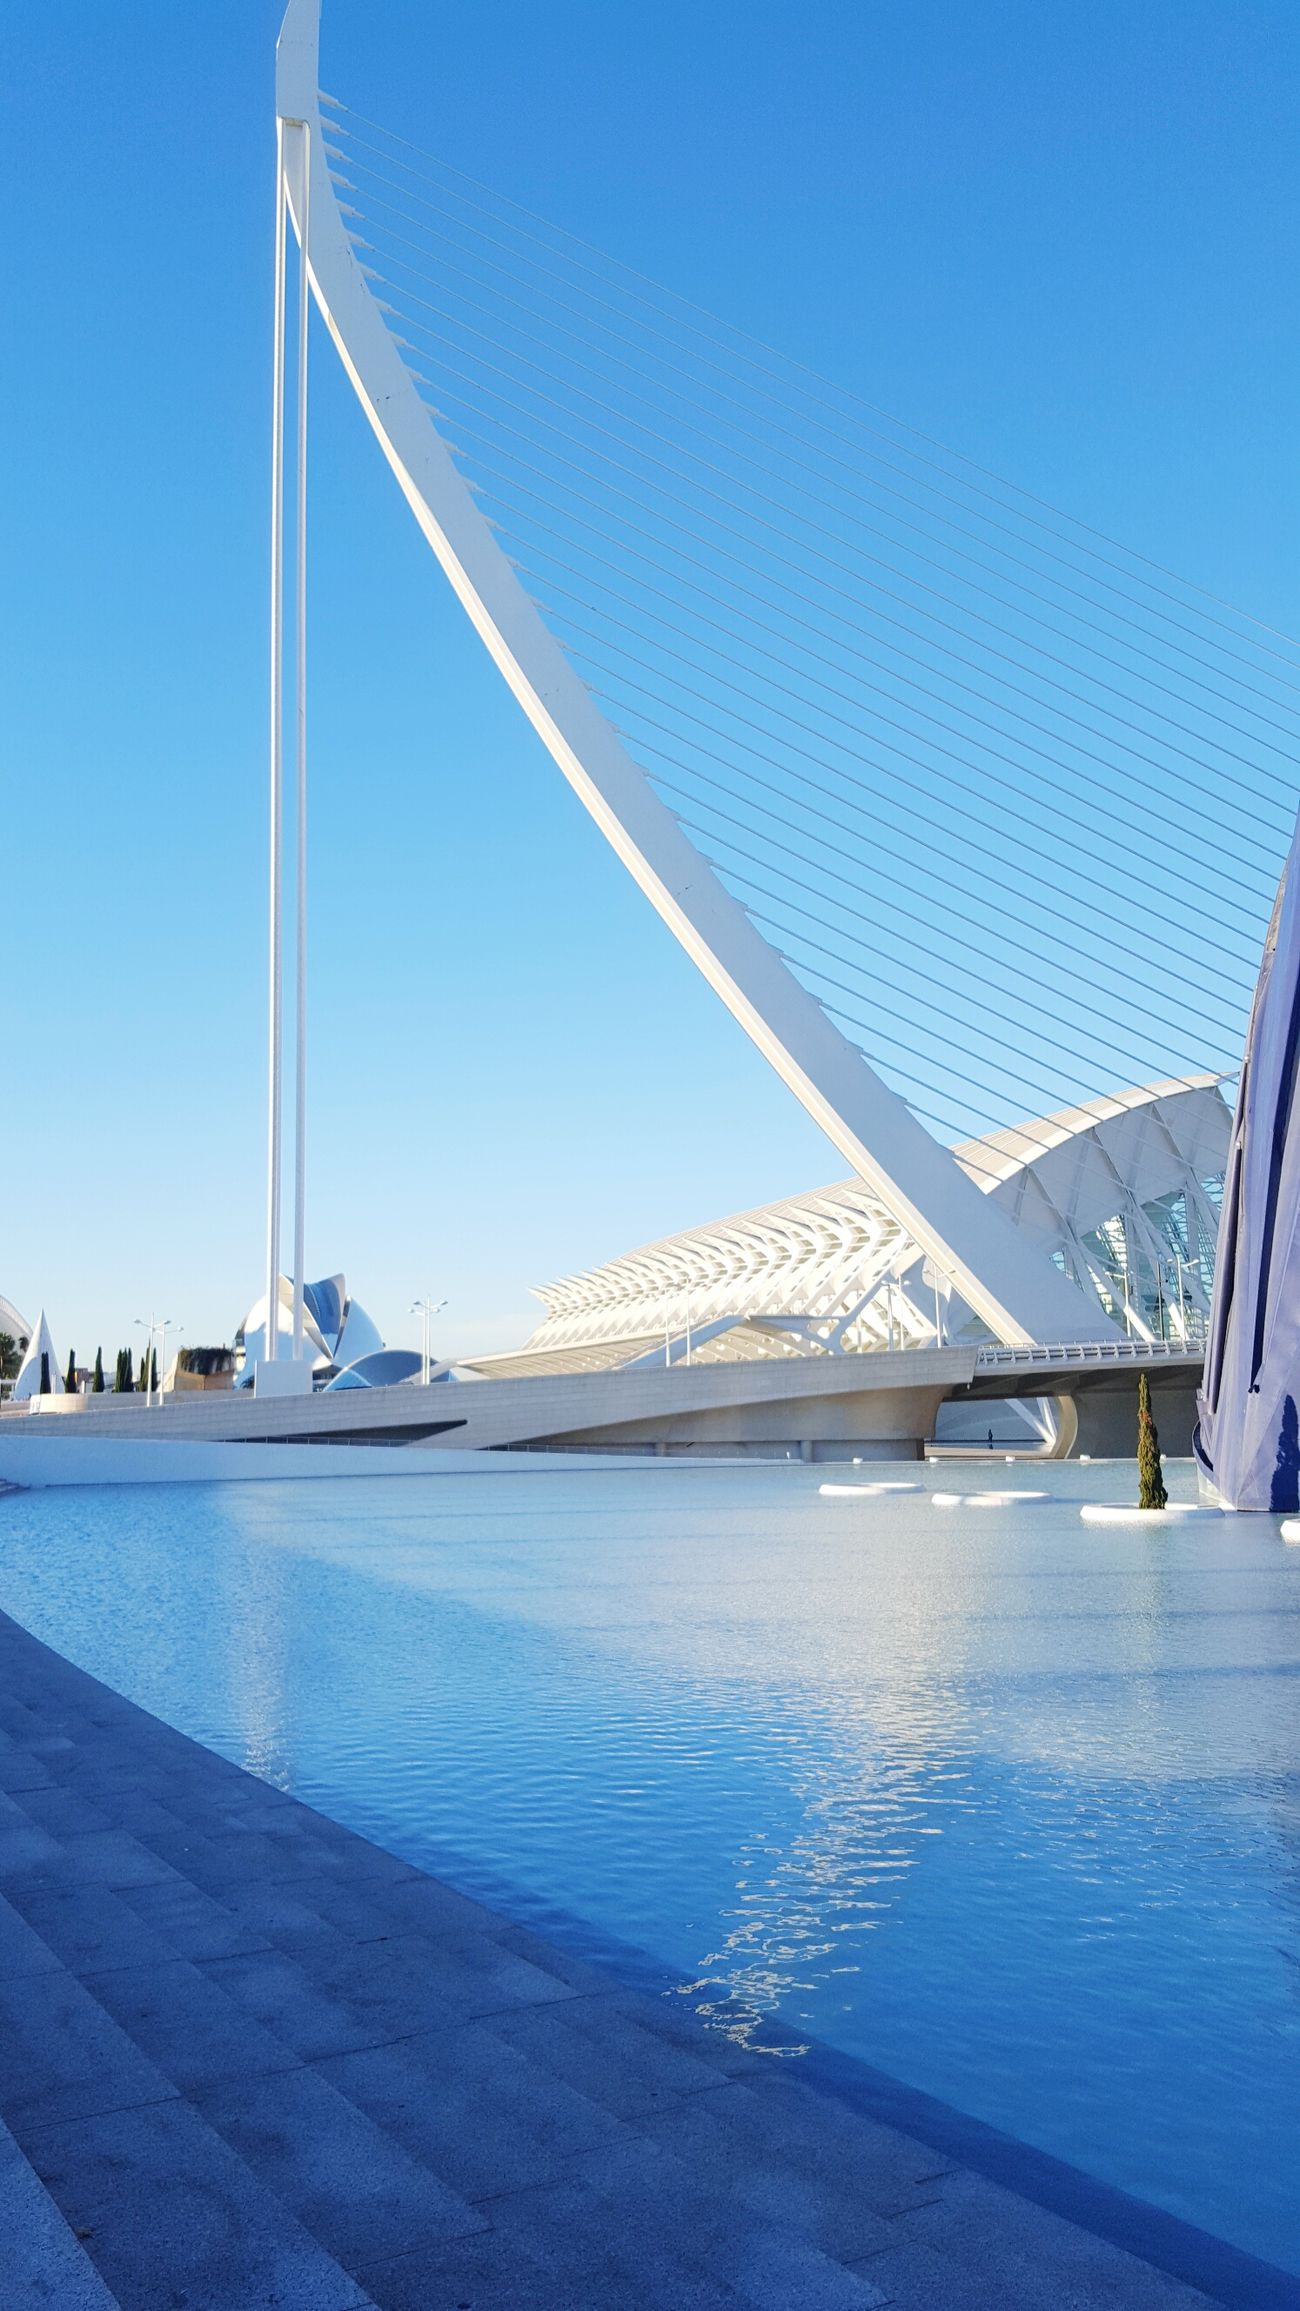 Valencia, Spain Clear Sky Blue Sky Water Outdoors Day No People Architecture Nature Freshness Oceanographic Oceanographic Valencia Oceanografico Oceanografico Valencia Great Outdoors Great Day  Great View Greatview